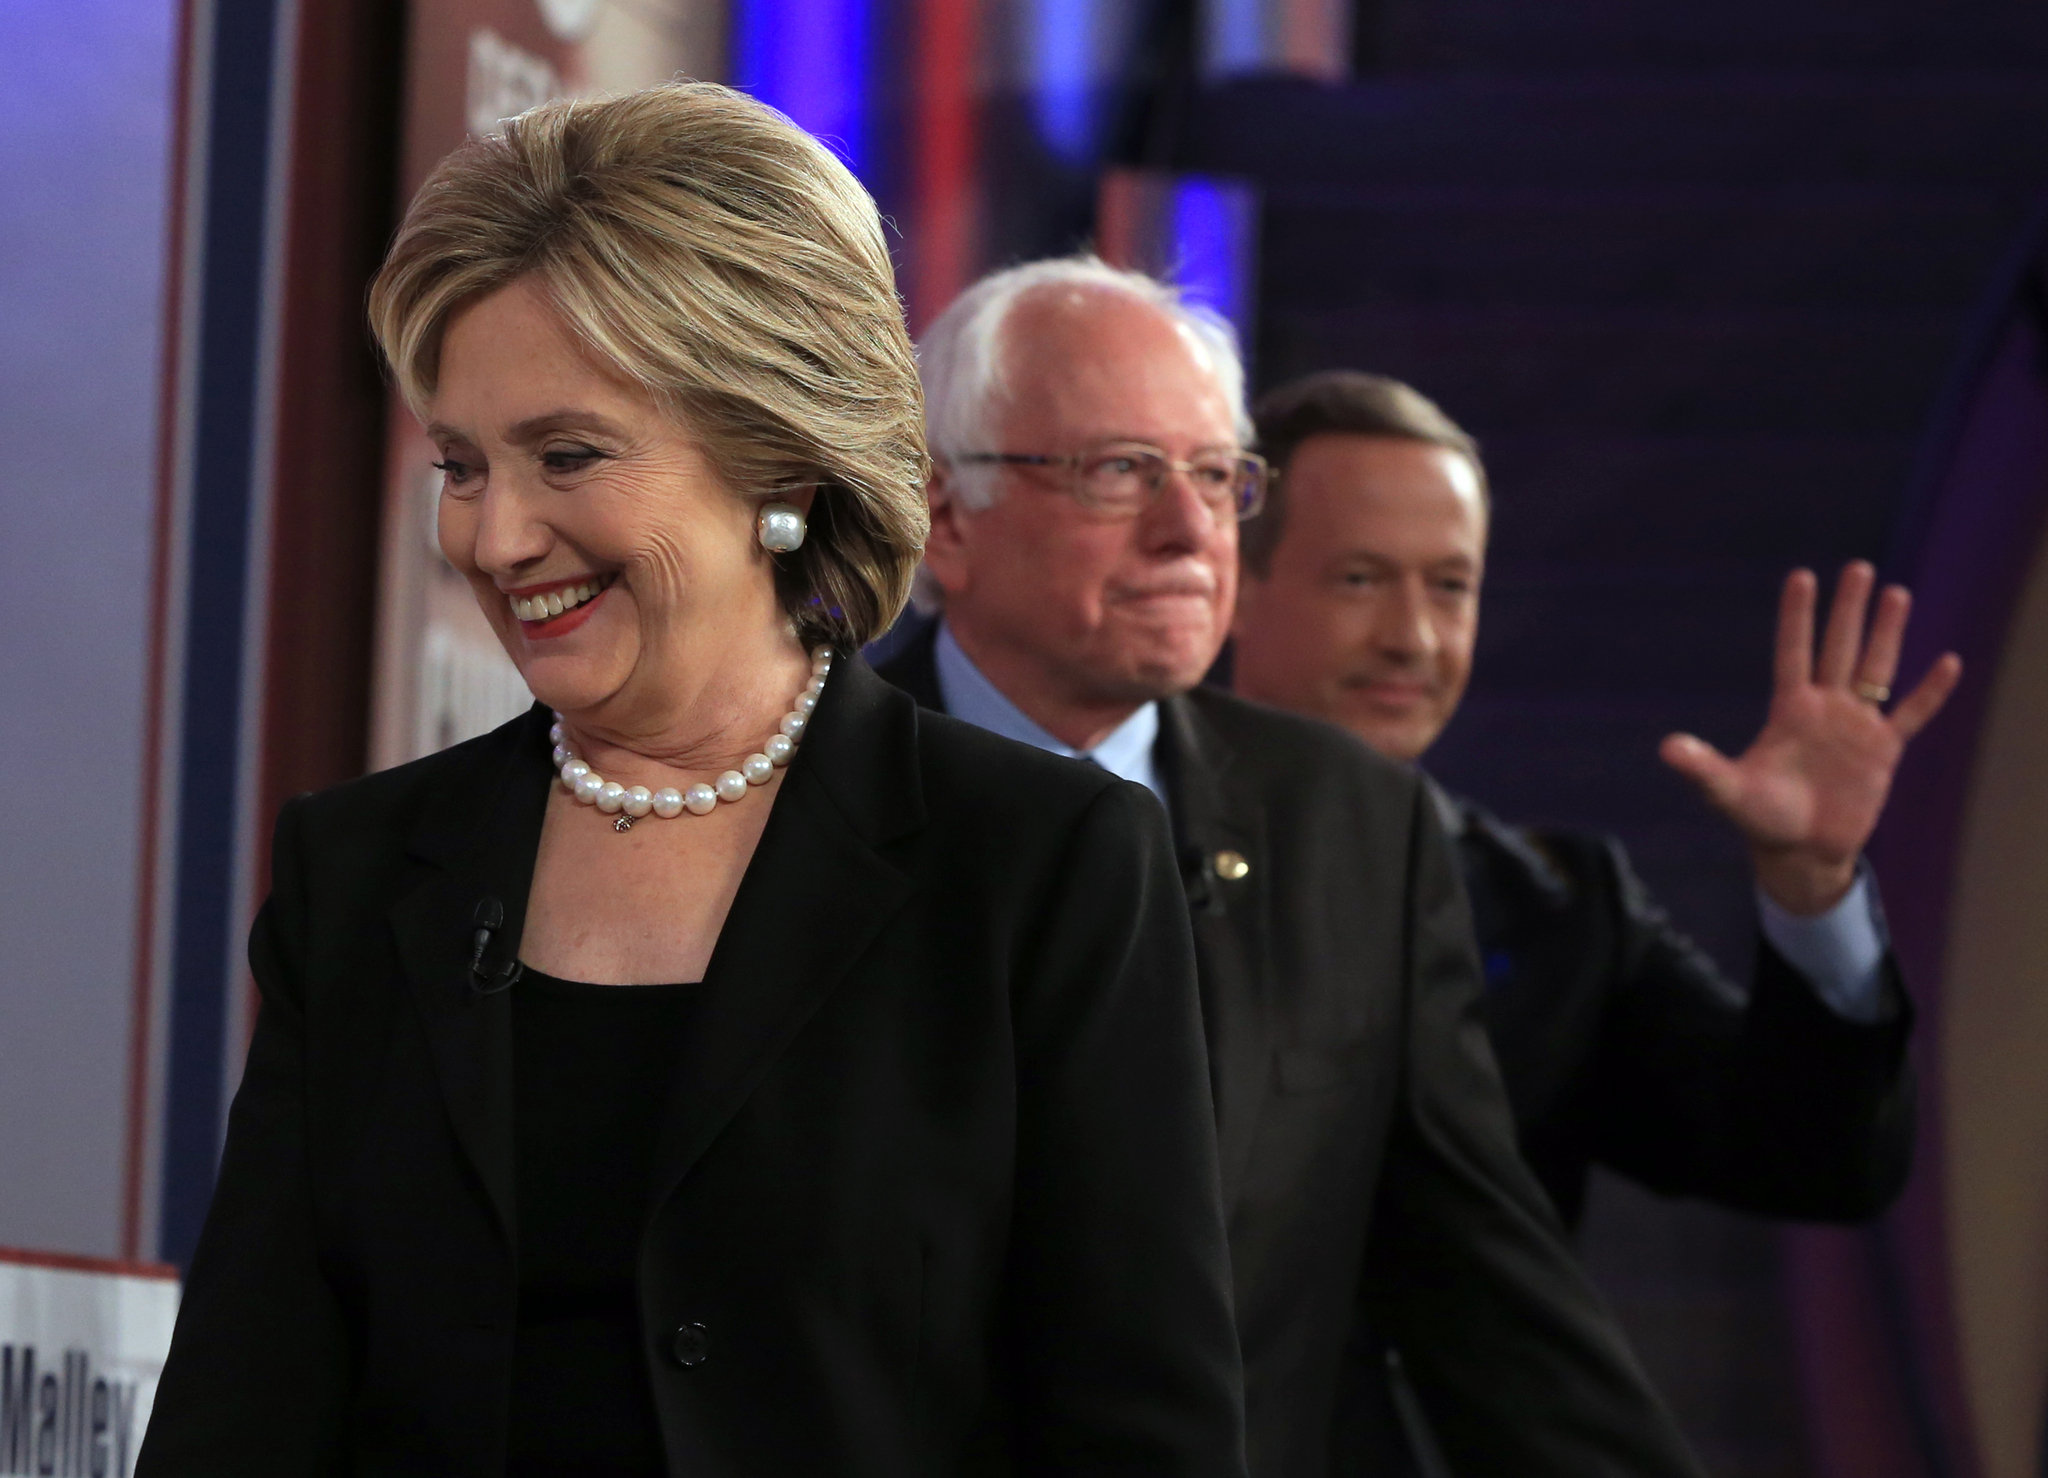 Hillary Clinton leaving a debate stage with rivals for the 2016 Democratic presidential convention, U.S. Senator Bernie Sanders and former Maryland governor Martin O'Malley. (nola.com)